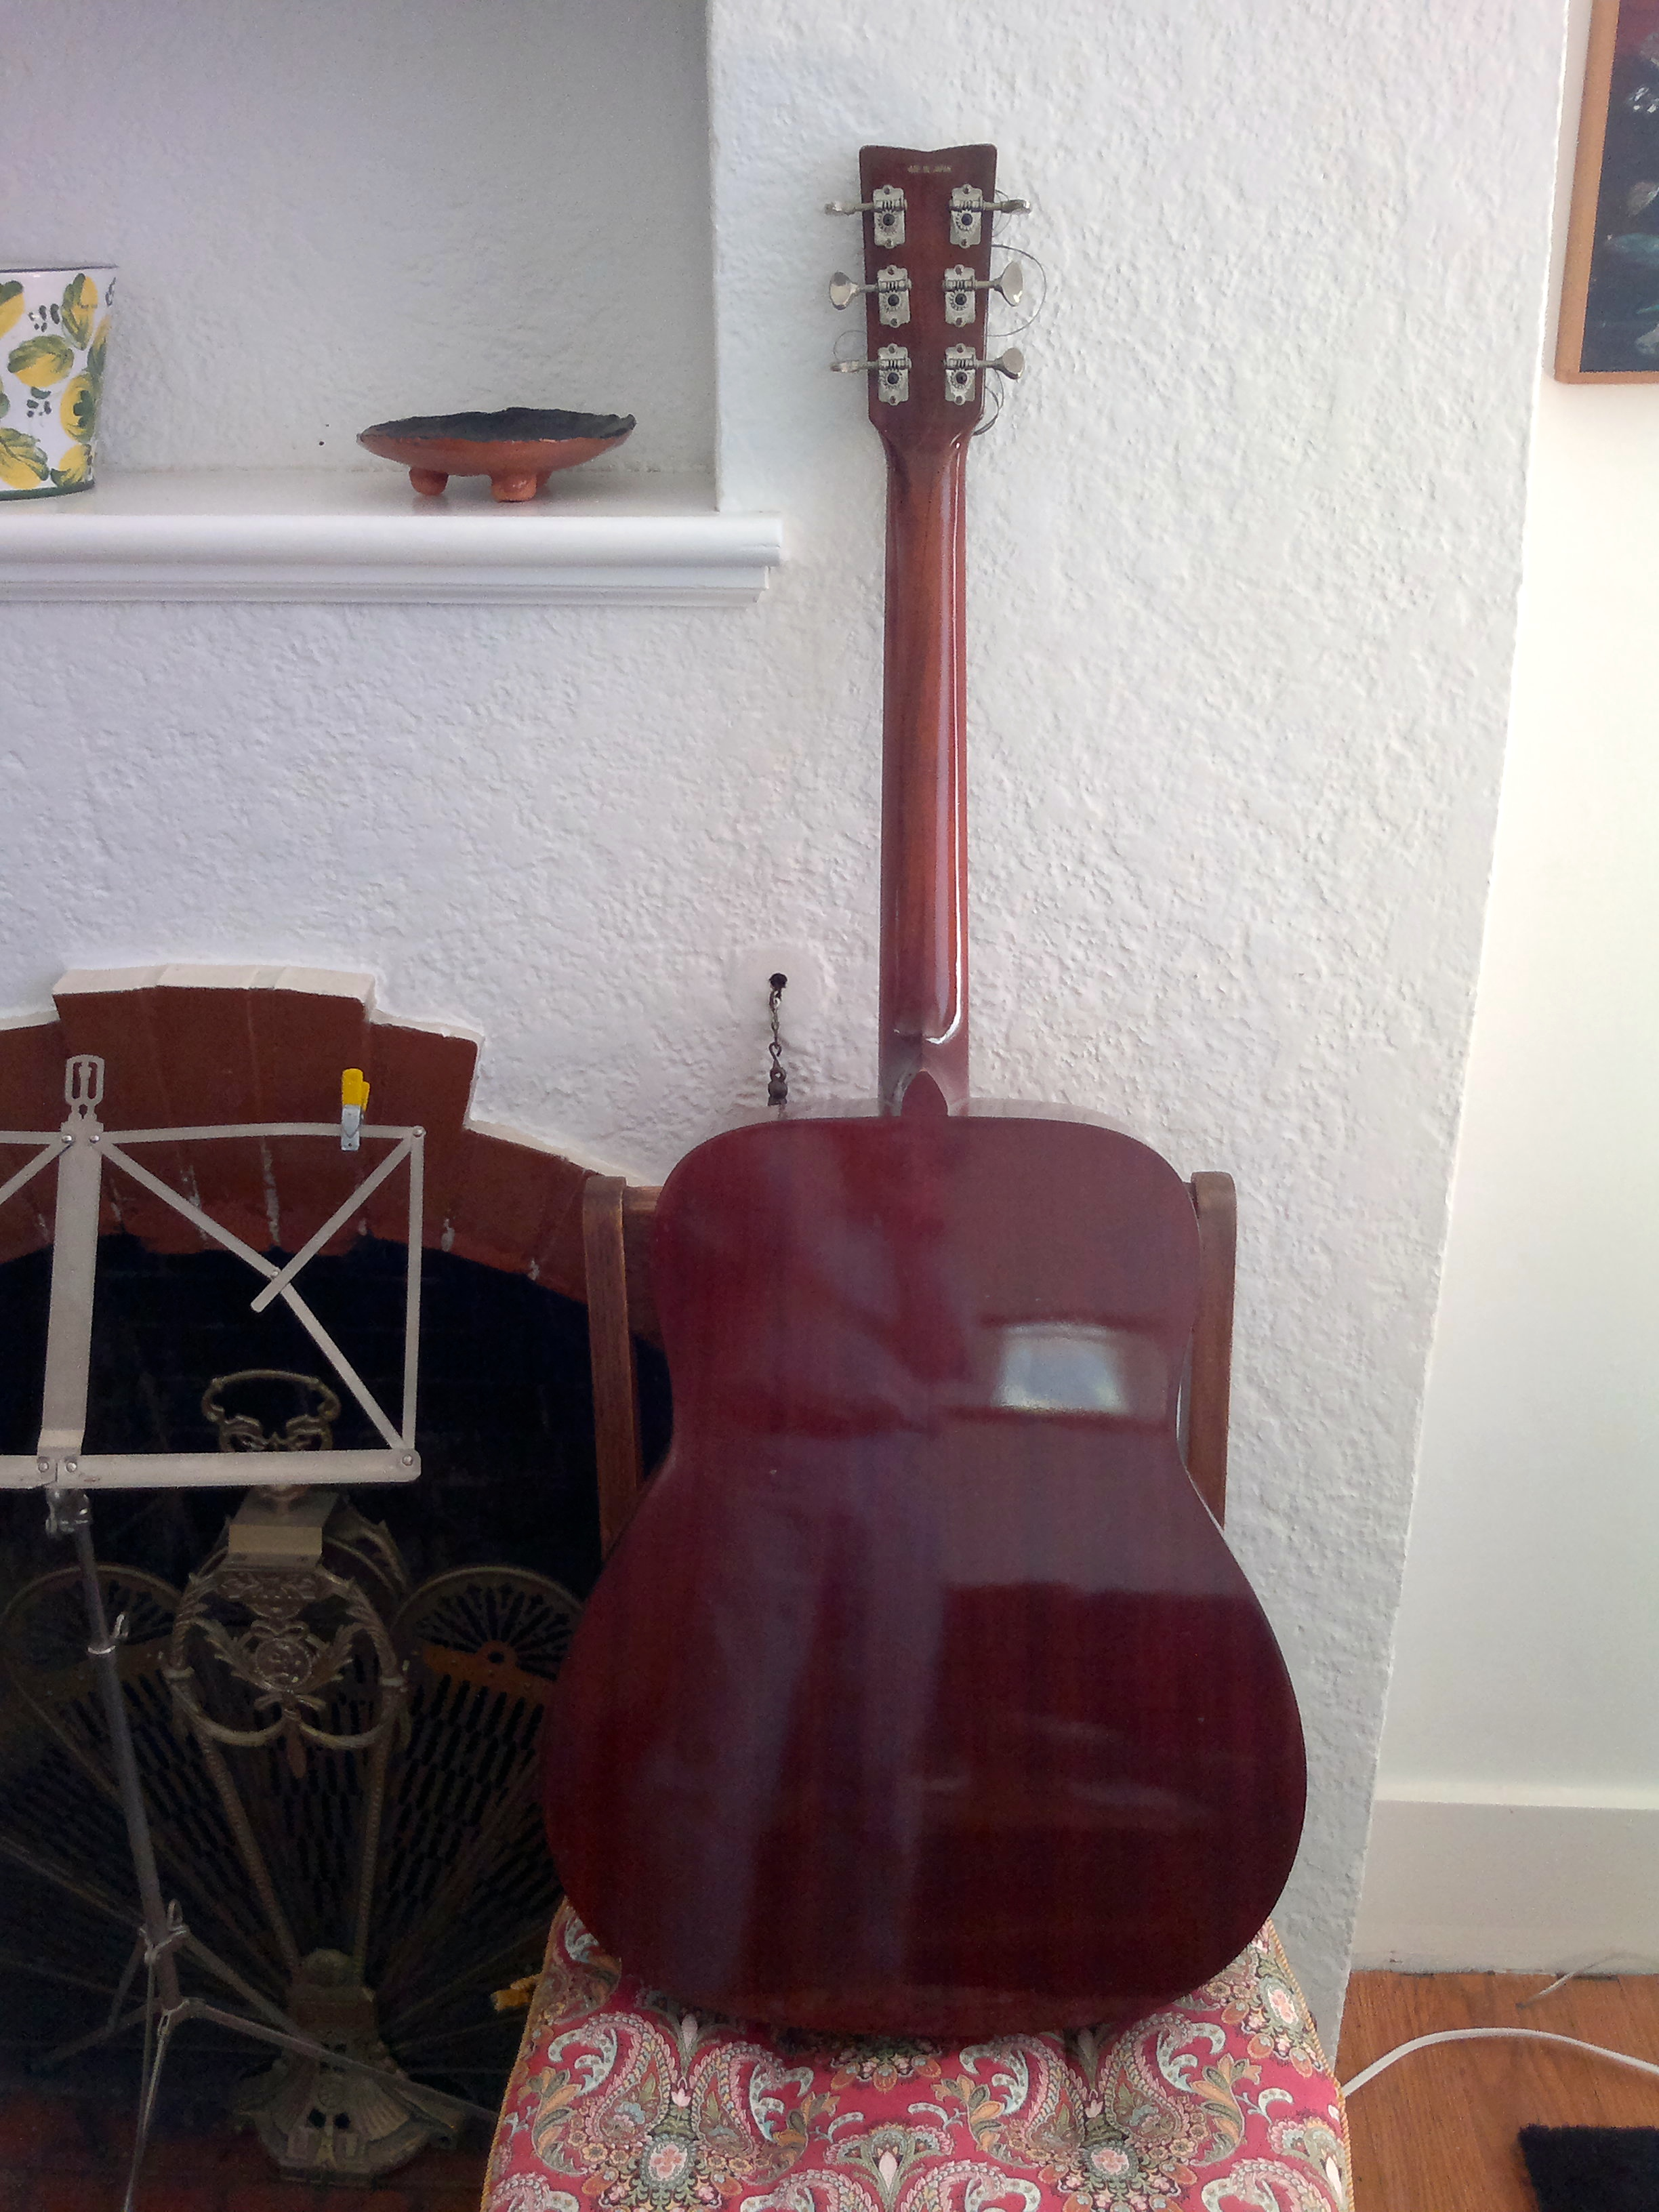 Yamaha Red Label Mfg Guitar For Sale